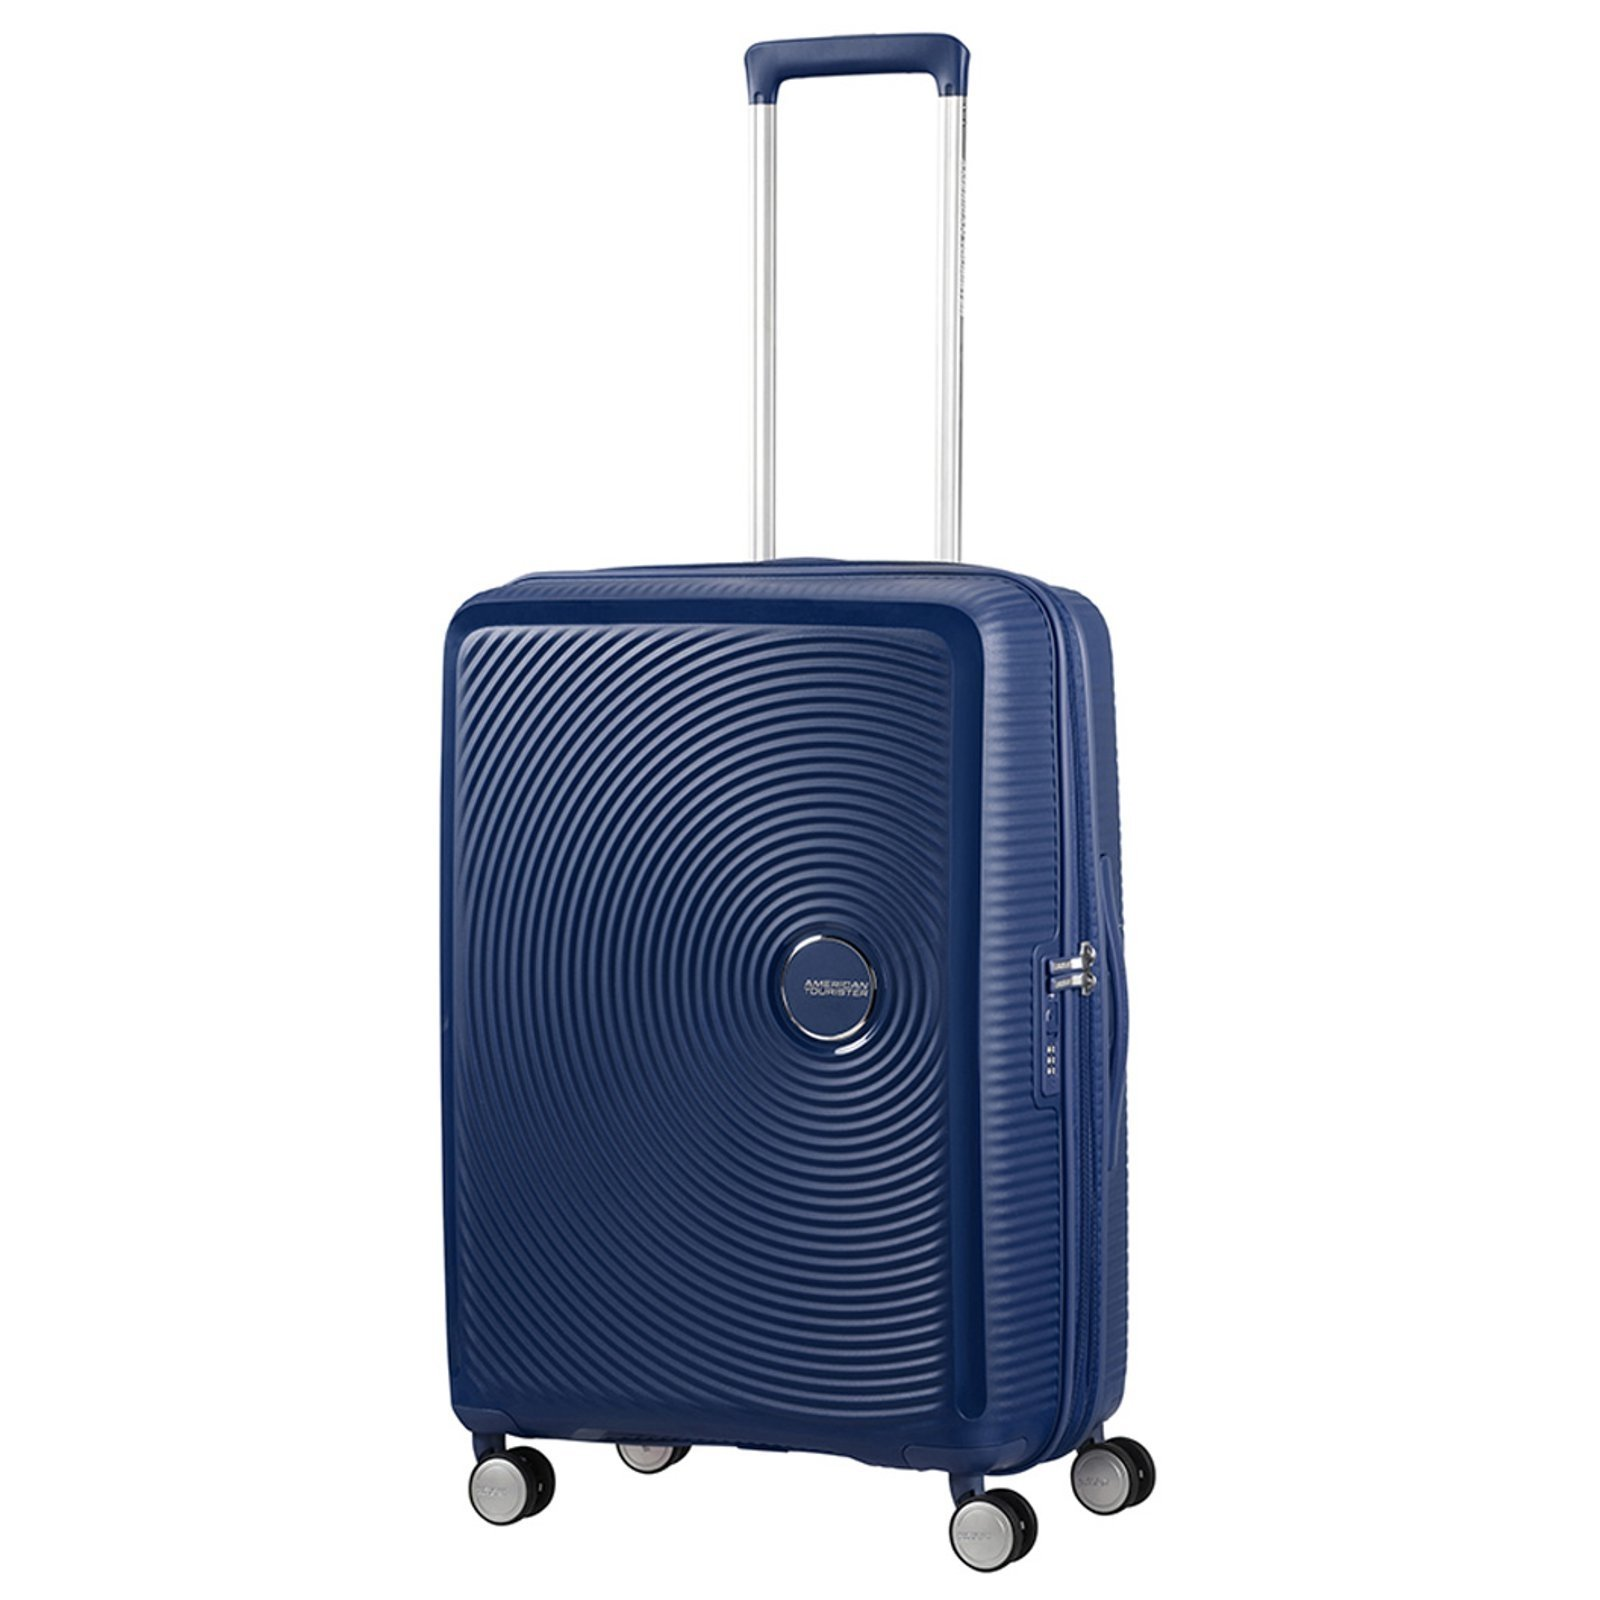 American Tourister - Soundbox Spinner Expandible, 55cm, 35,5/41 L - 2,6 KG, Azul (Midnight Navy)